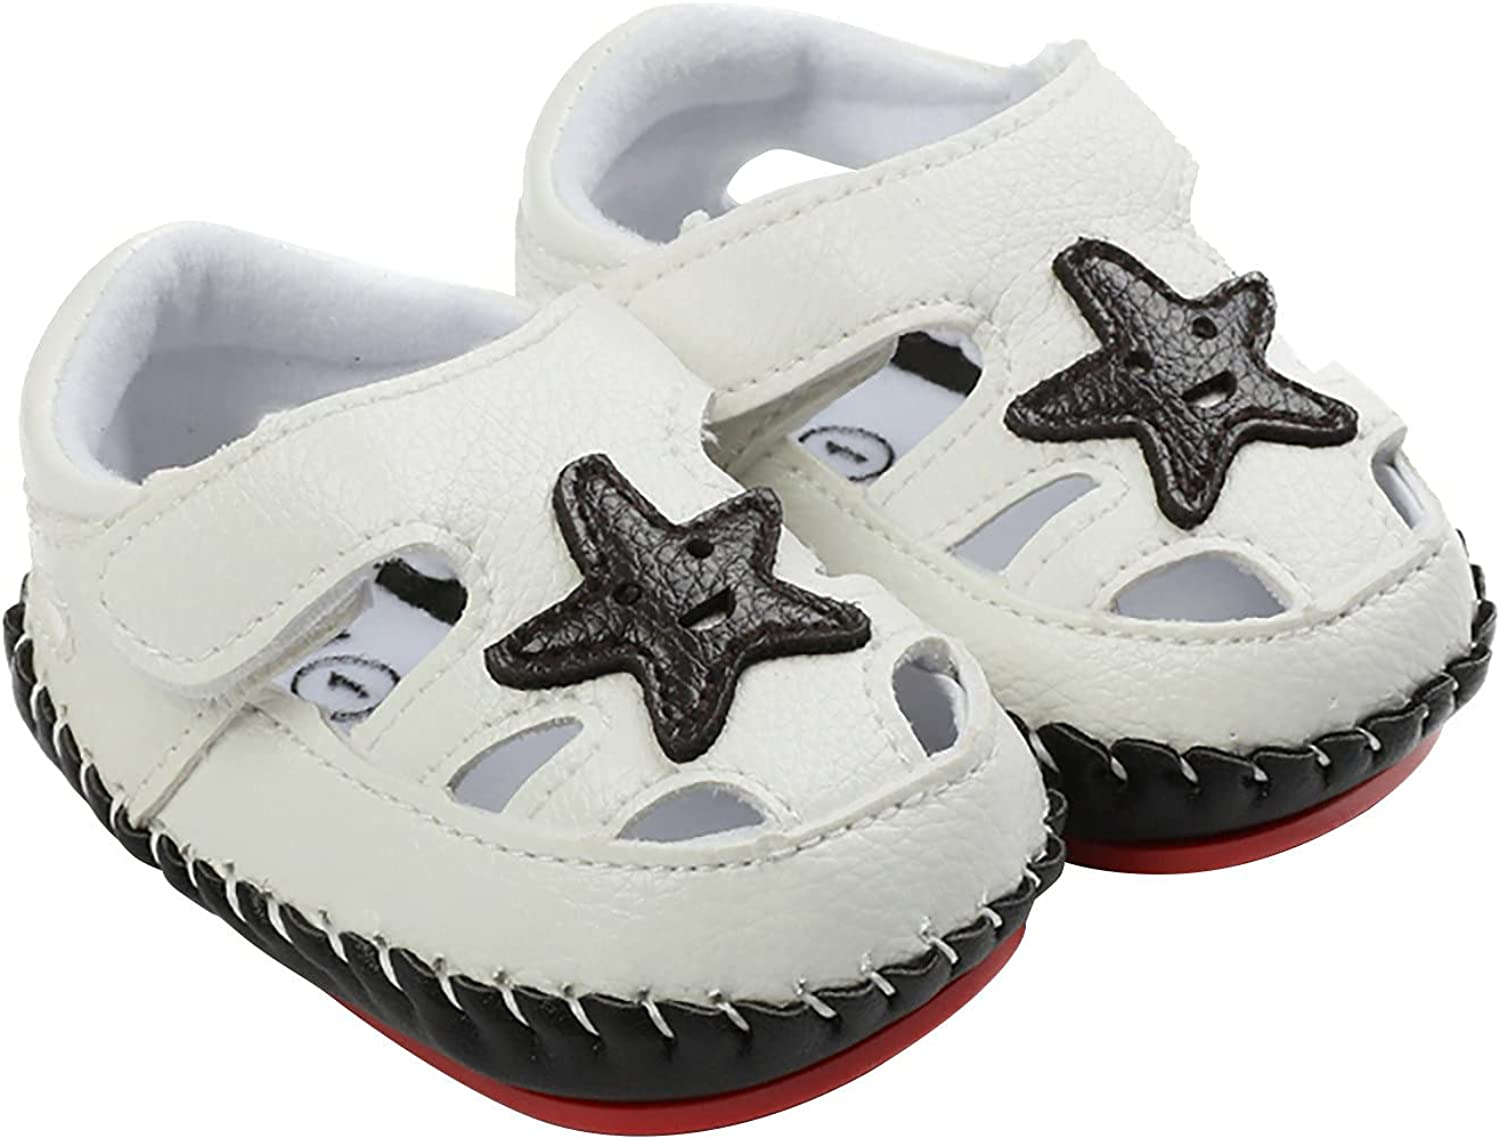 Max 51% OFF LINGLONGAN Summer Hand-Stitched Baby Non-Sl Sandals Baltimore Mall Rubber-Soled